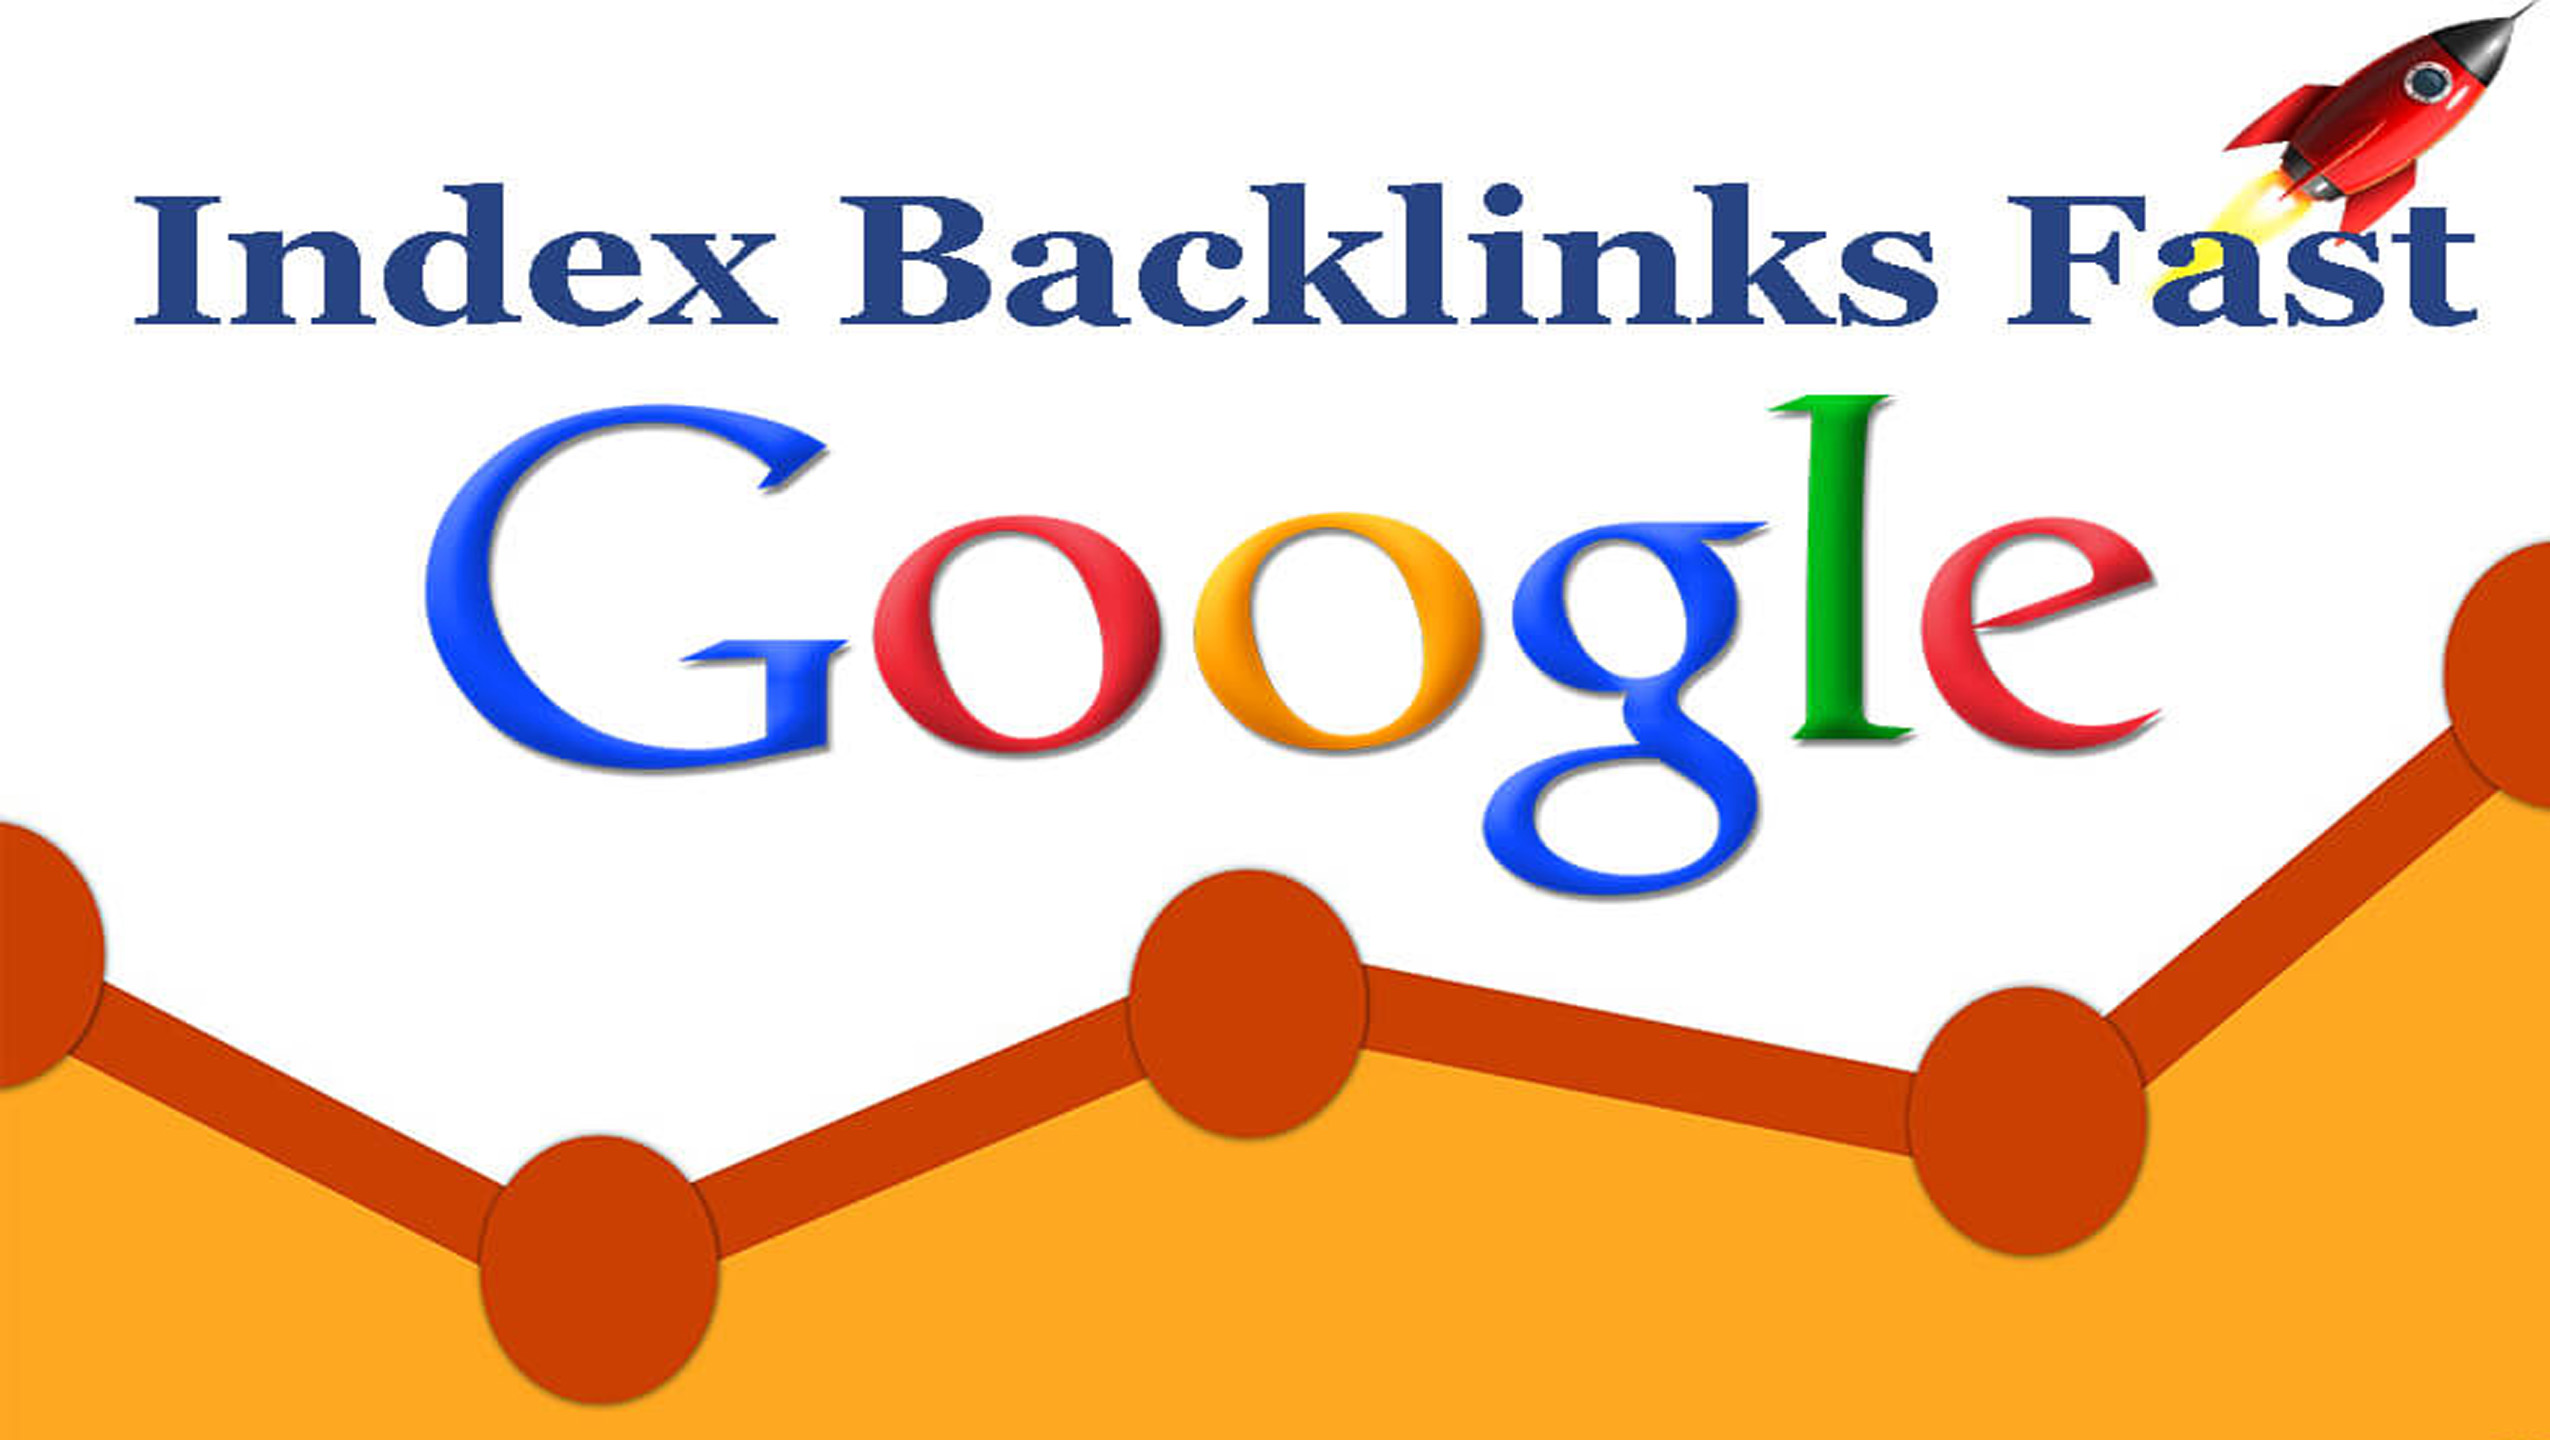 Get 1000+Indexed and contractual Backlinks with fast delivery